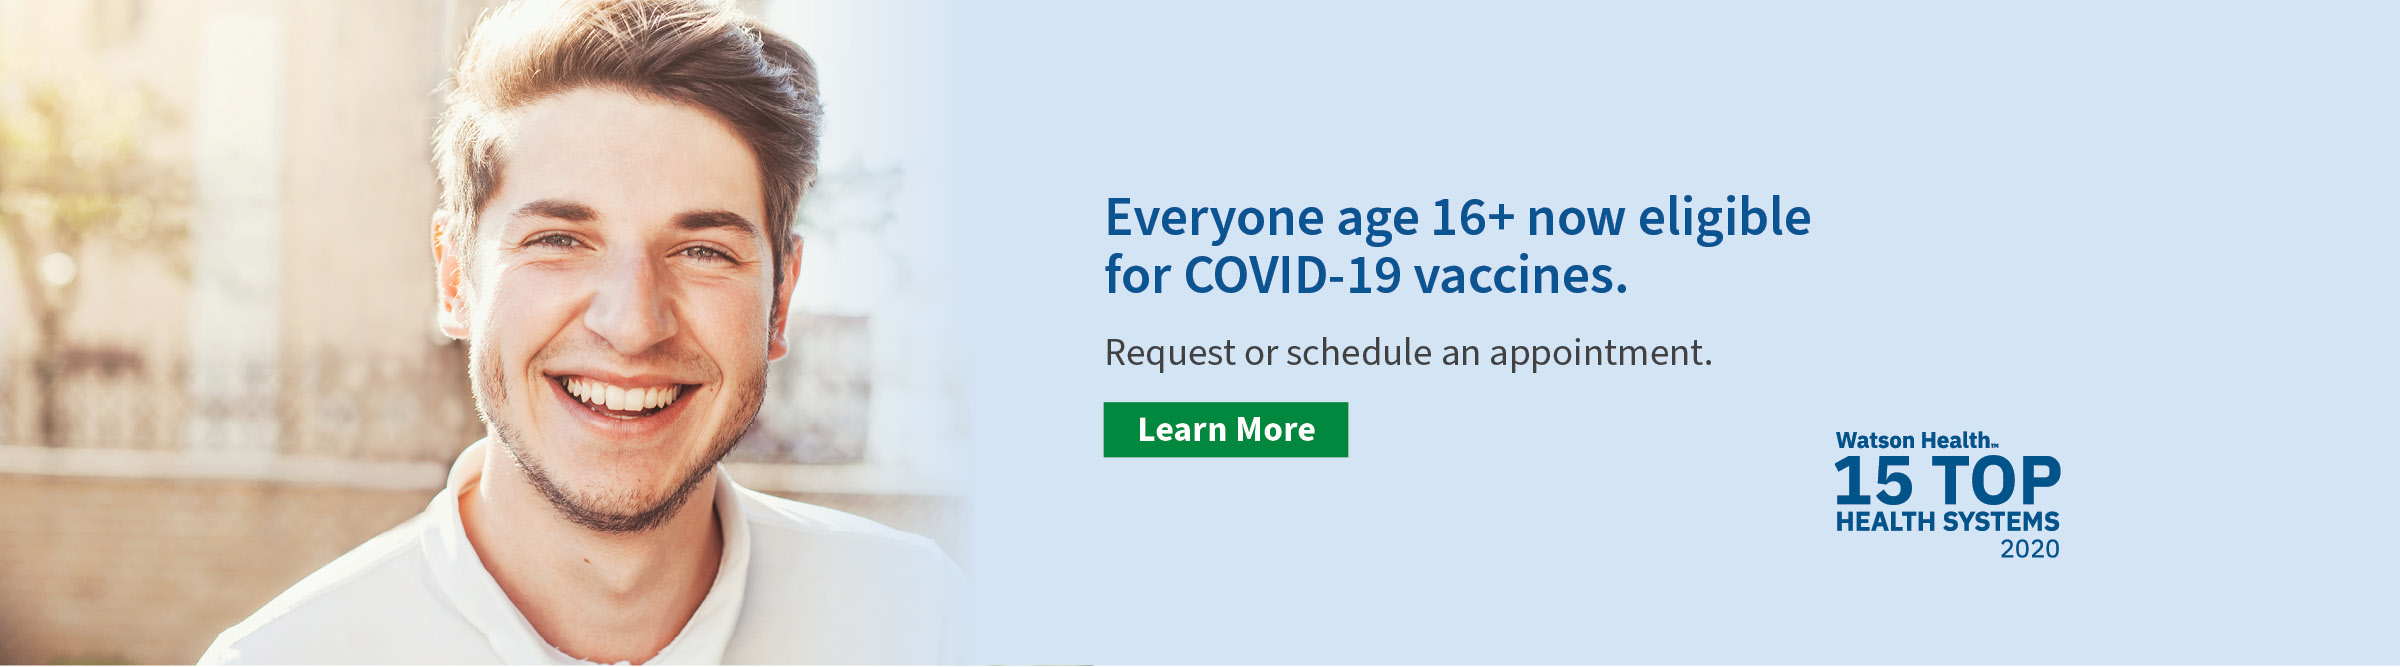 Everyone age 16+ now eligible for COVID-19 vaccines.